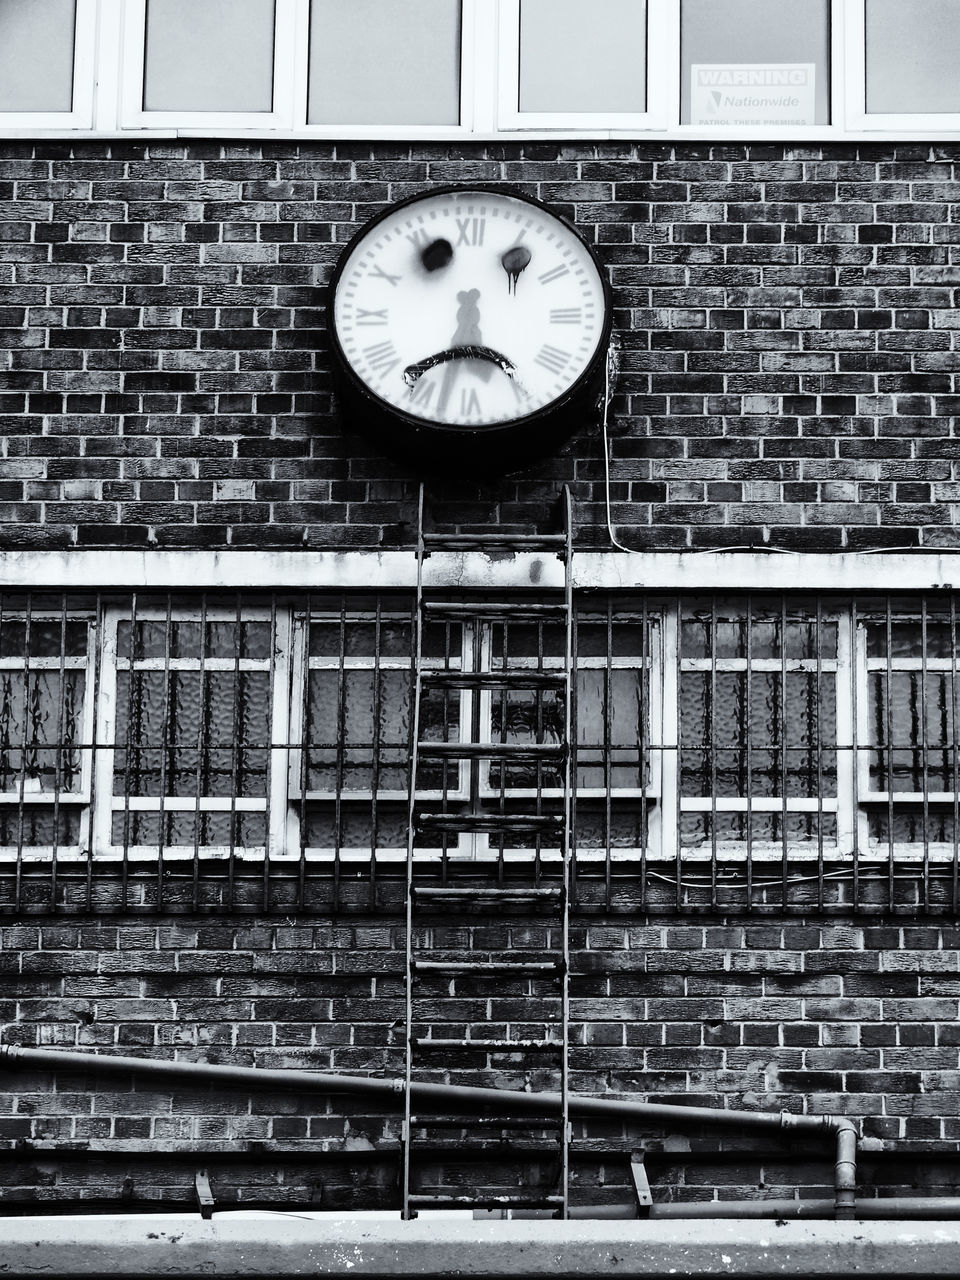 clock, brick wall, no people, time, day, architecture, built structure, indoors, close-up, clock face